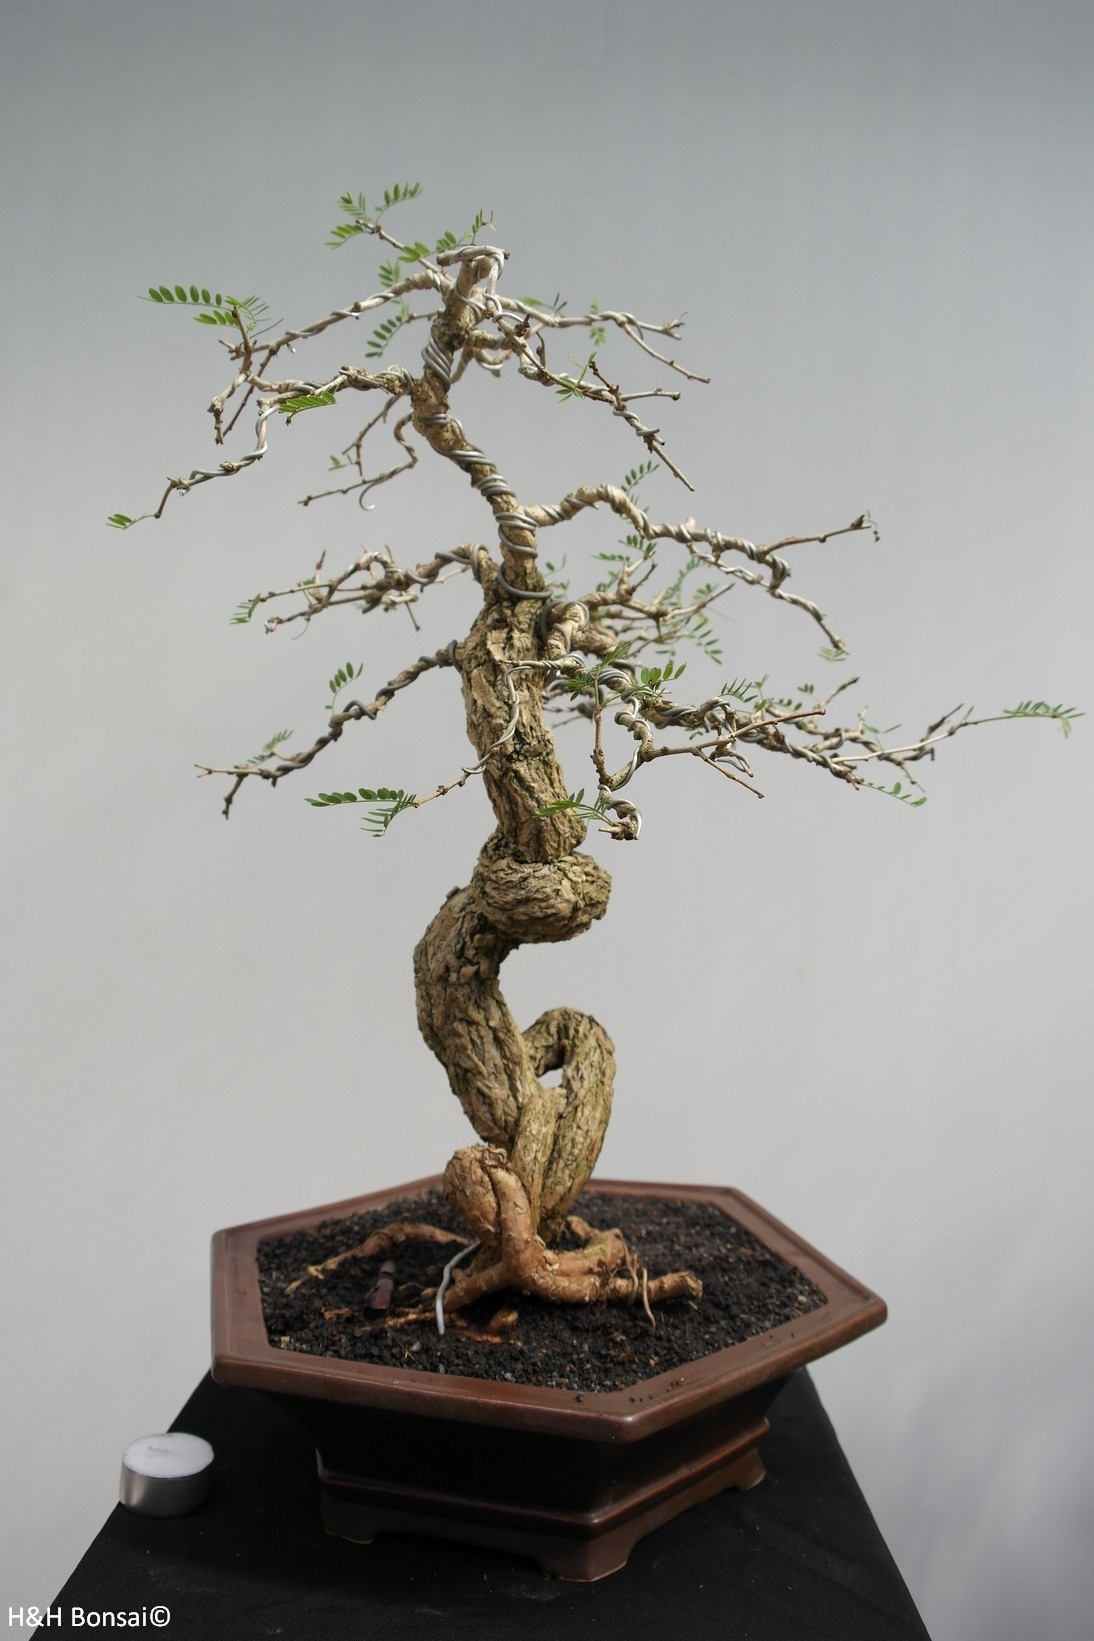 Bonsai Tamarinde, no. 7857